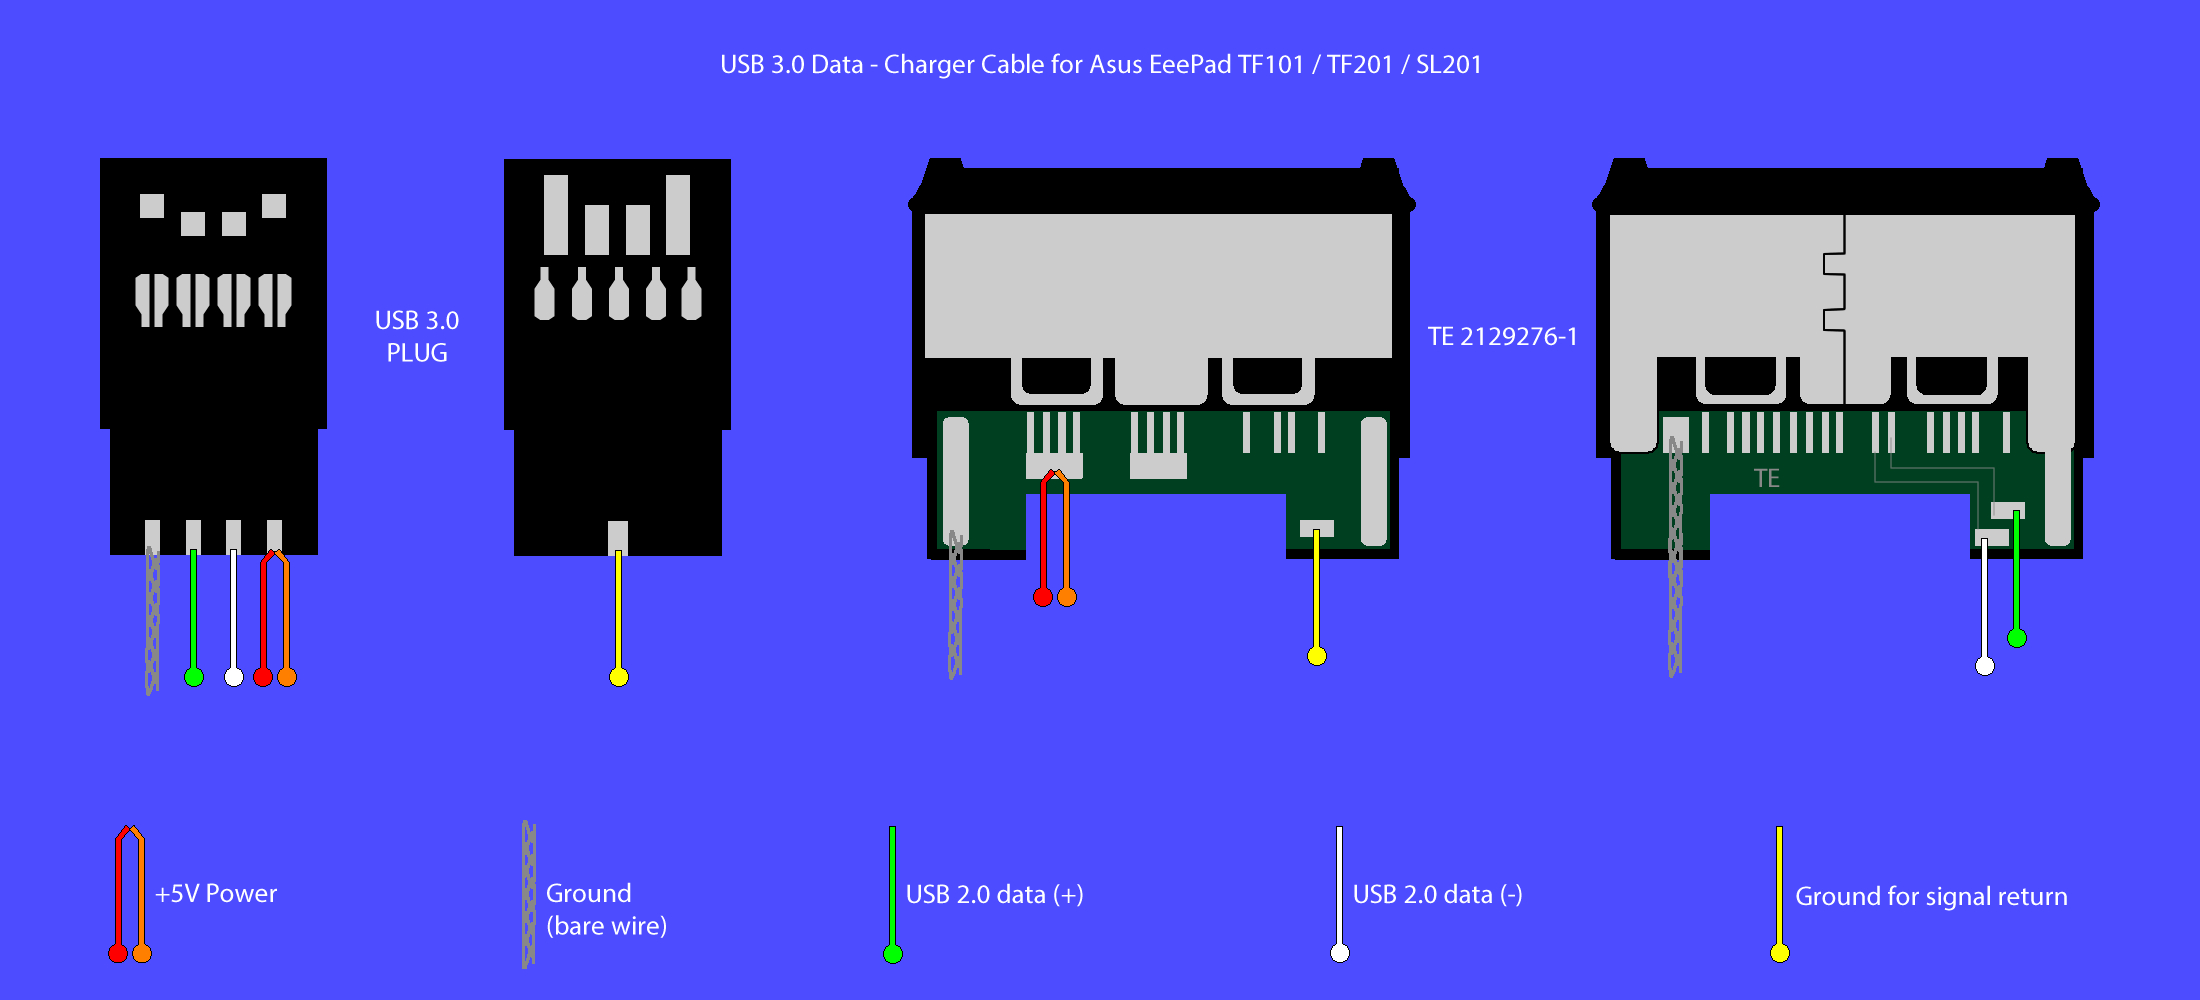 Iphone 5 Usb Charger Wiring Diagram | Wiring Diagram - Iphone 5 Usb Charger Wiring Diagram